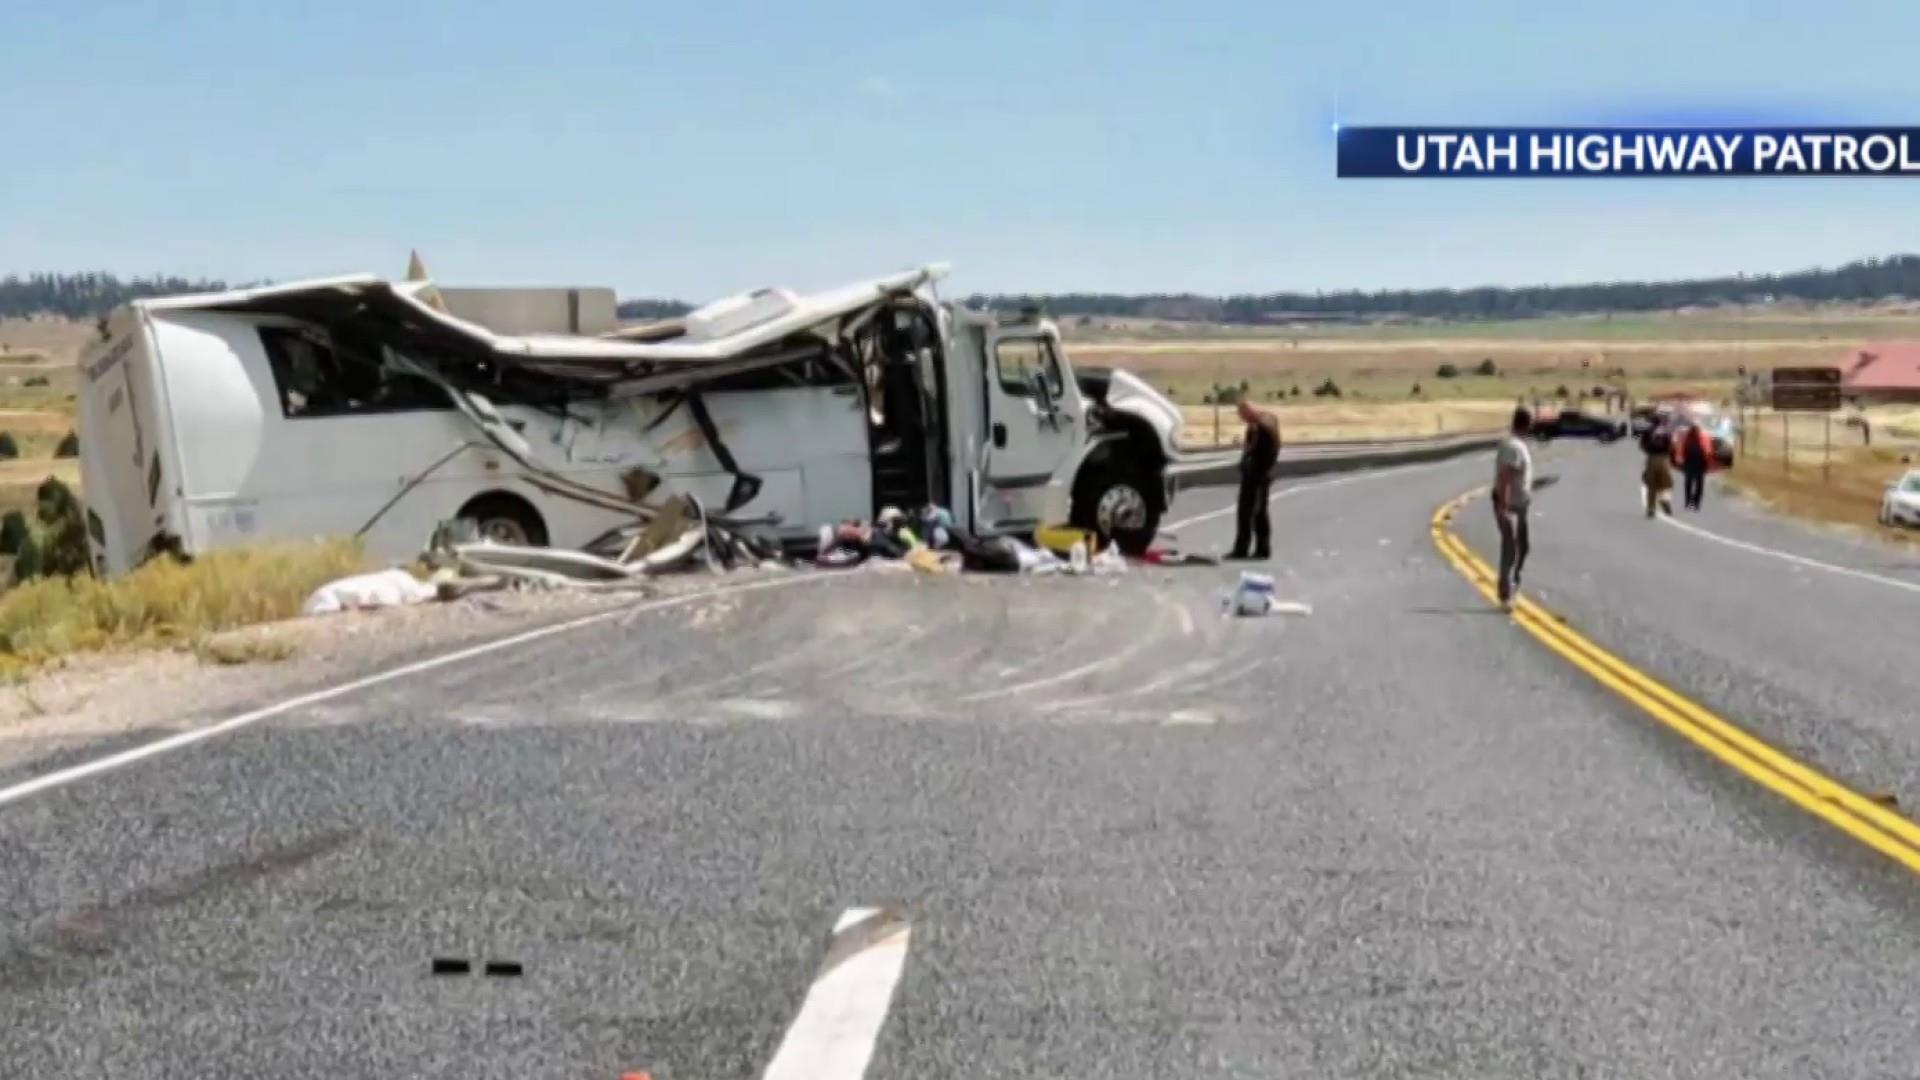 At least four killed in Utah bus crash near Bryce Canyon